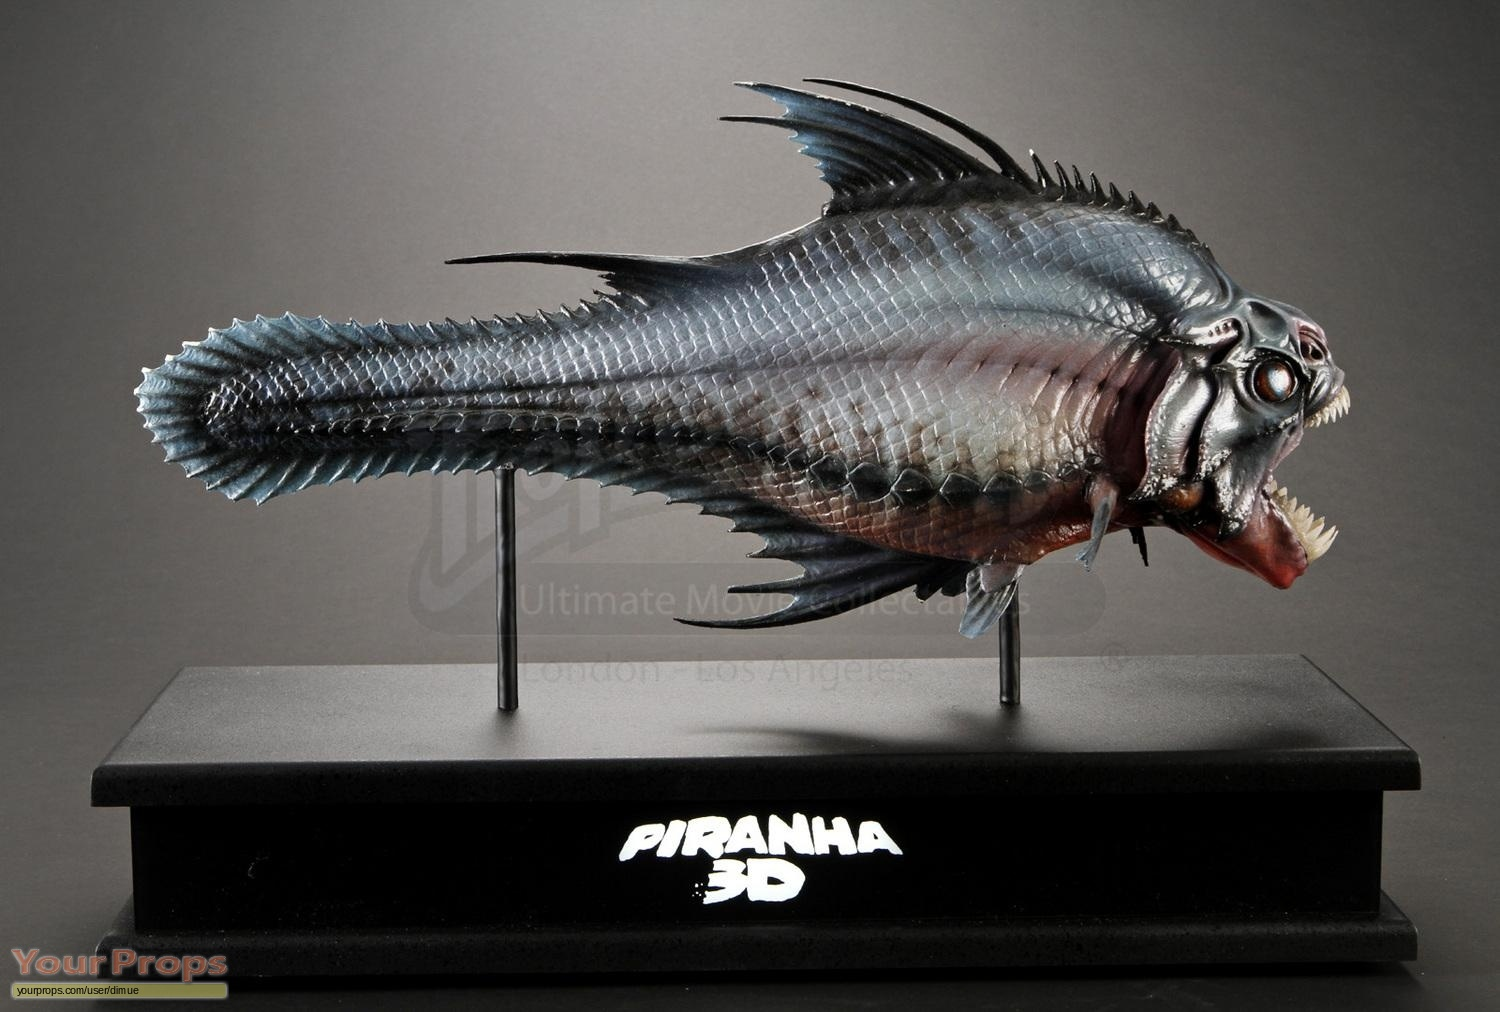 Piranha 3d piranha lifesize cgi reference maquette display for Maquette stand